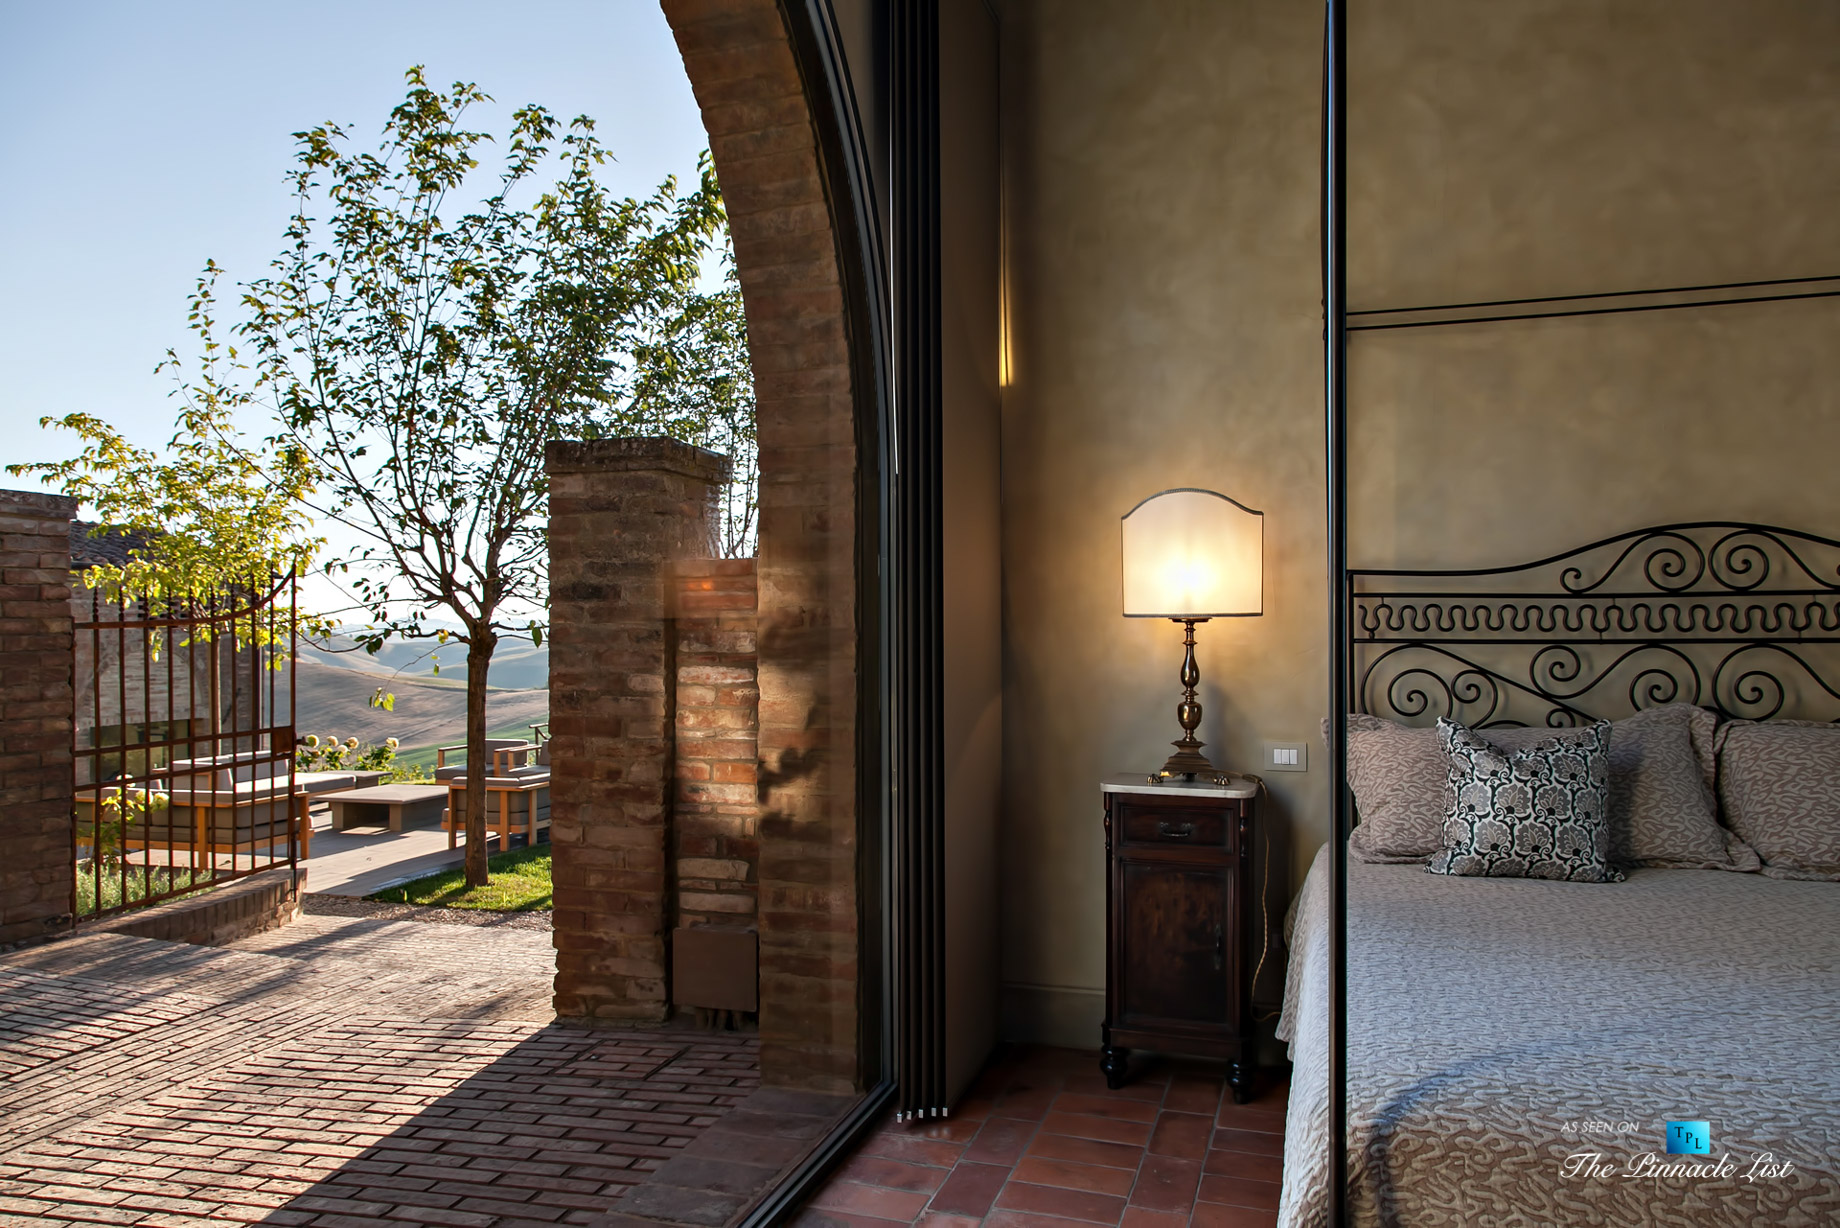 Podere Paníco Estate – Monteroni d'Arbia, Tuscany, Italy – Exterior Sitting Area and Bedroom View – Luxury Real Estate – Tuscan Villa